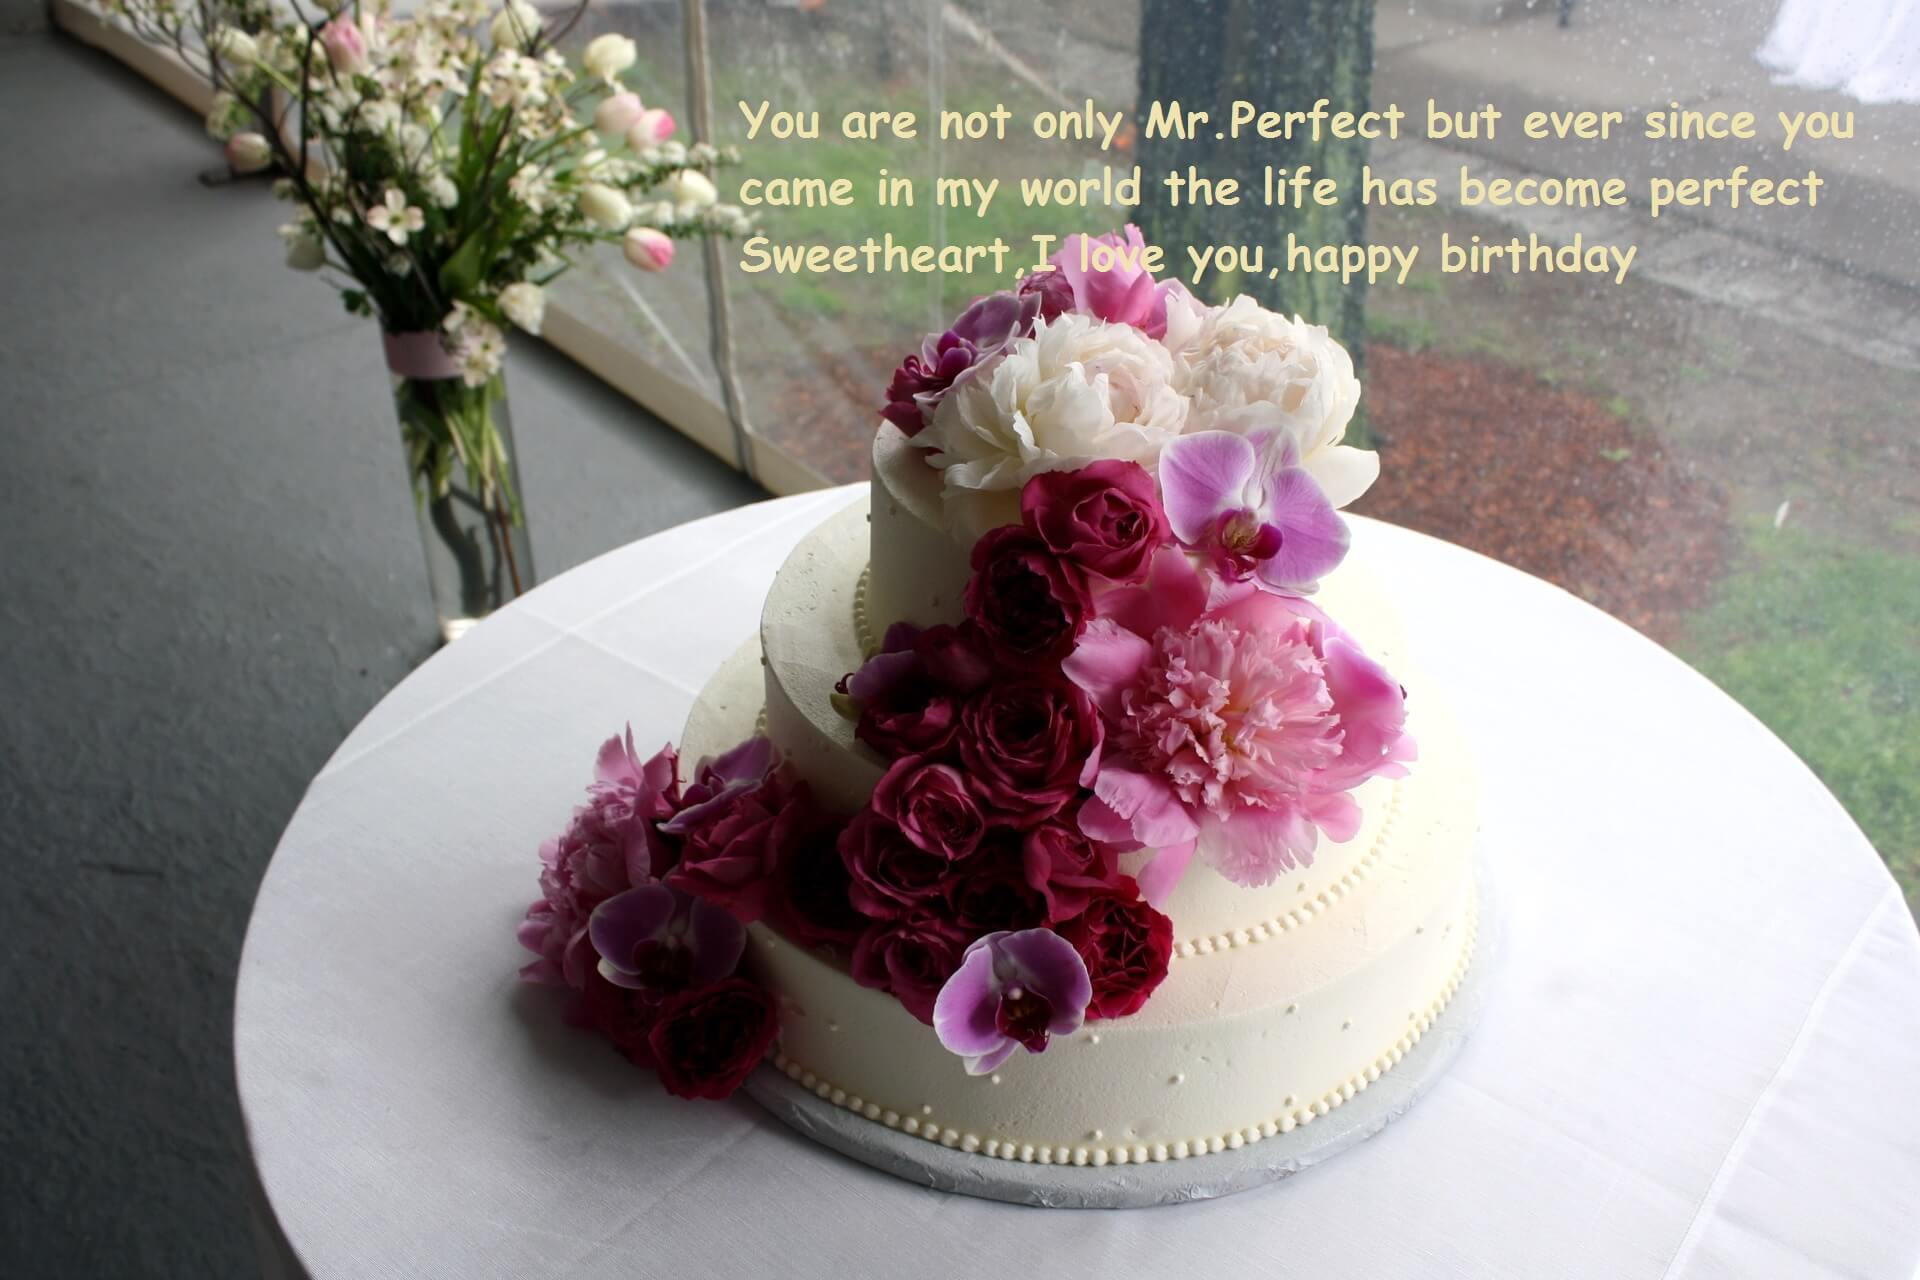 Best ideas about Birthday Wishes Cake . Save or Pin Happy Birthday Cake Wishes With Flowers Now.